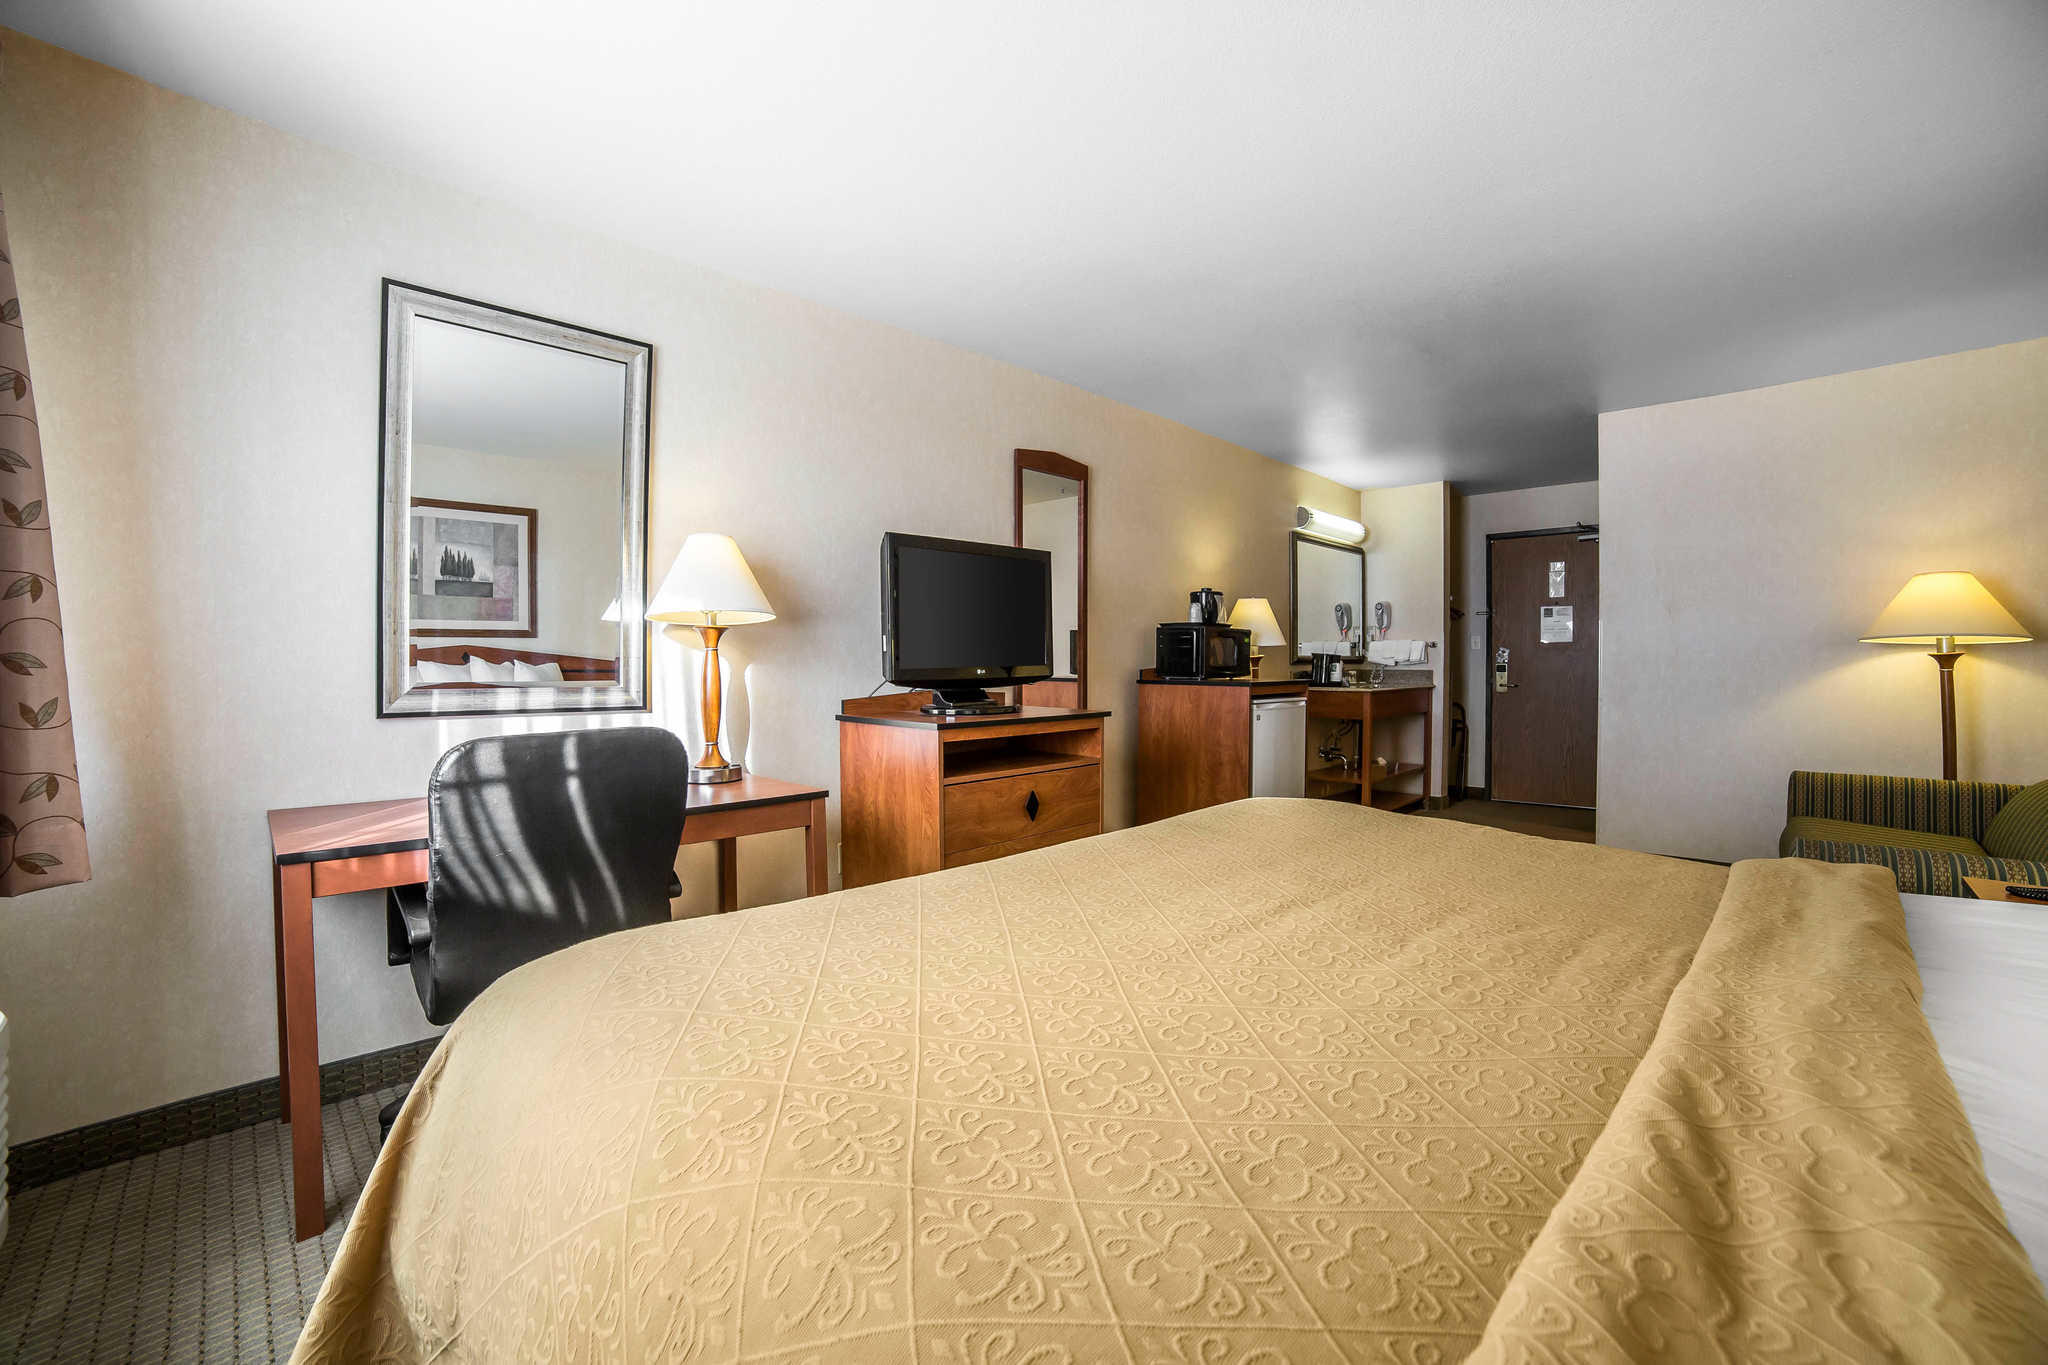 Best Hotels In Cheyenne Wy